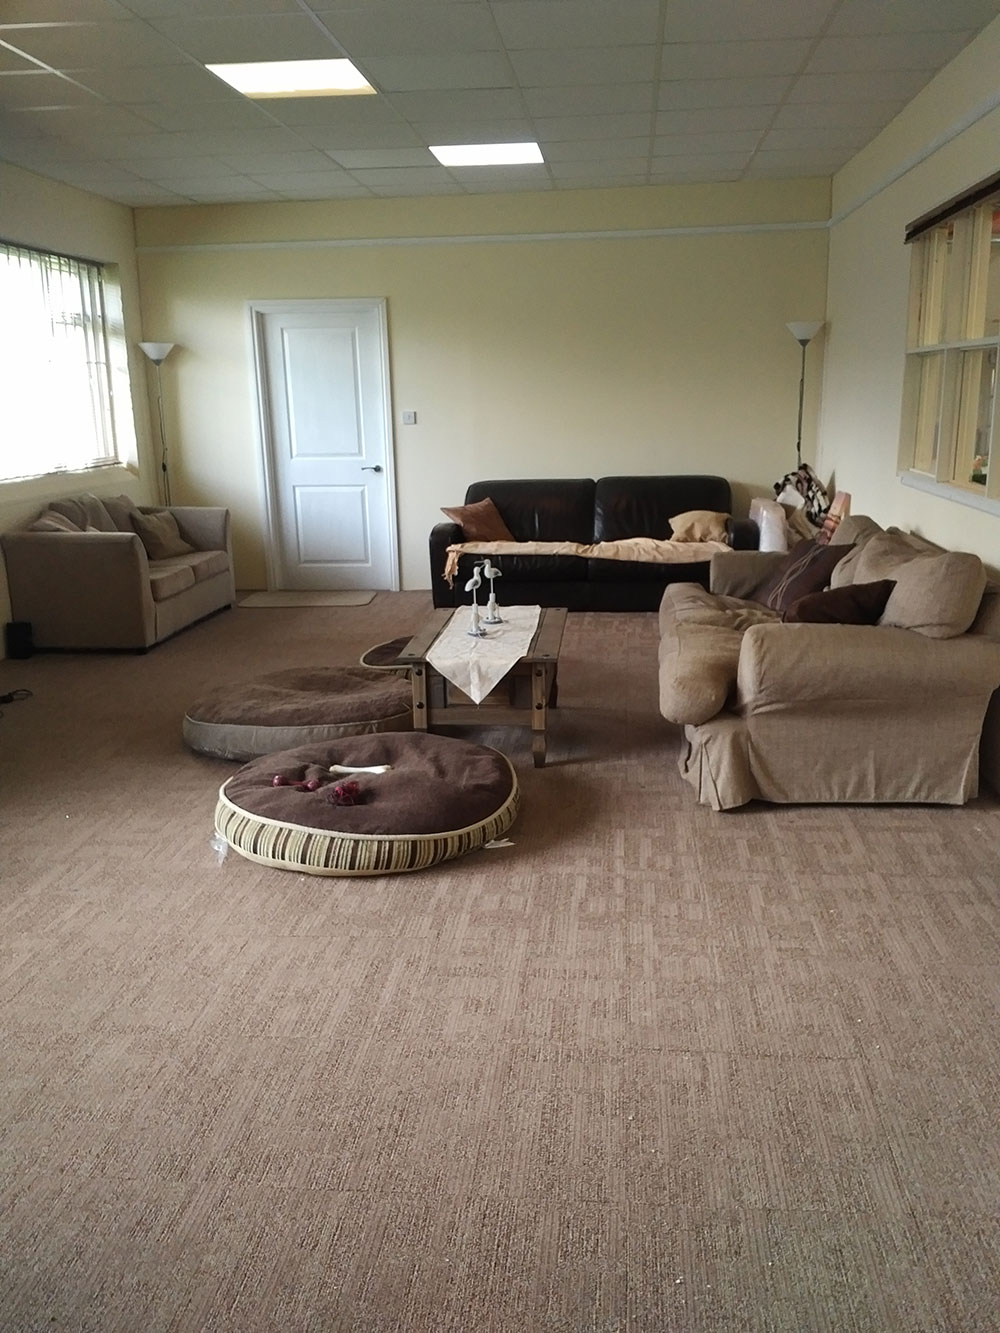 Home boarders have a house to live in which is built into the back of the main exercise area — this is the sitting room